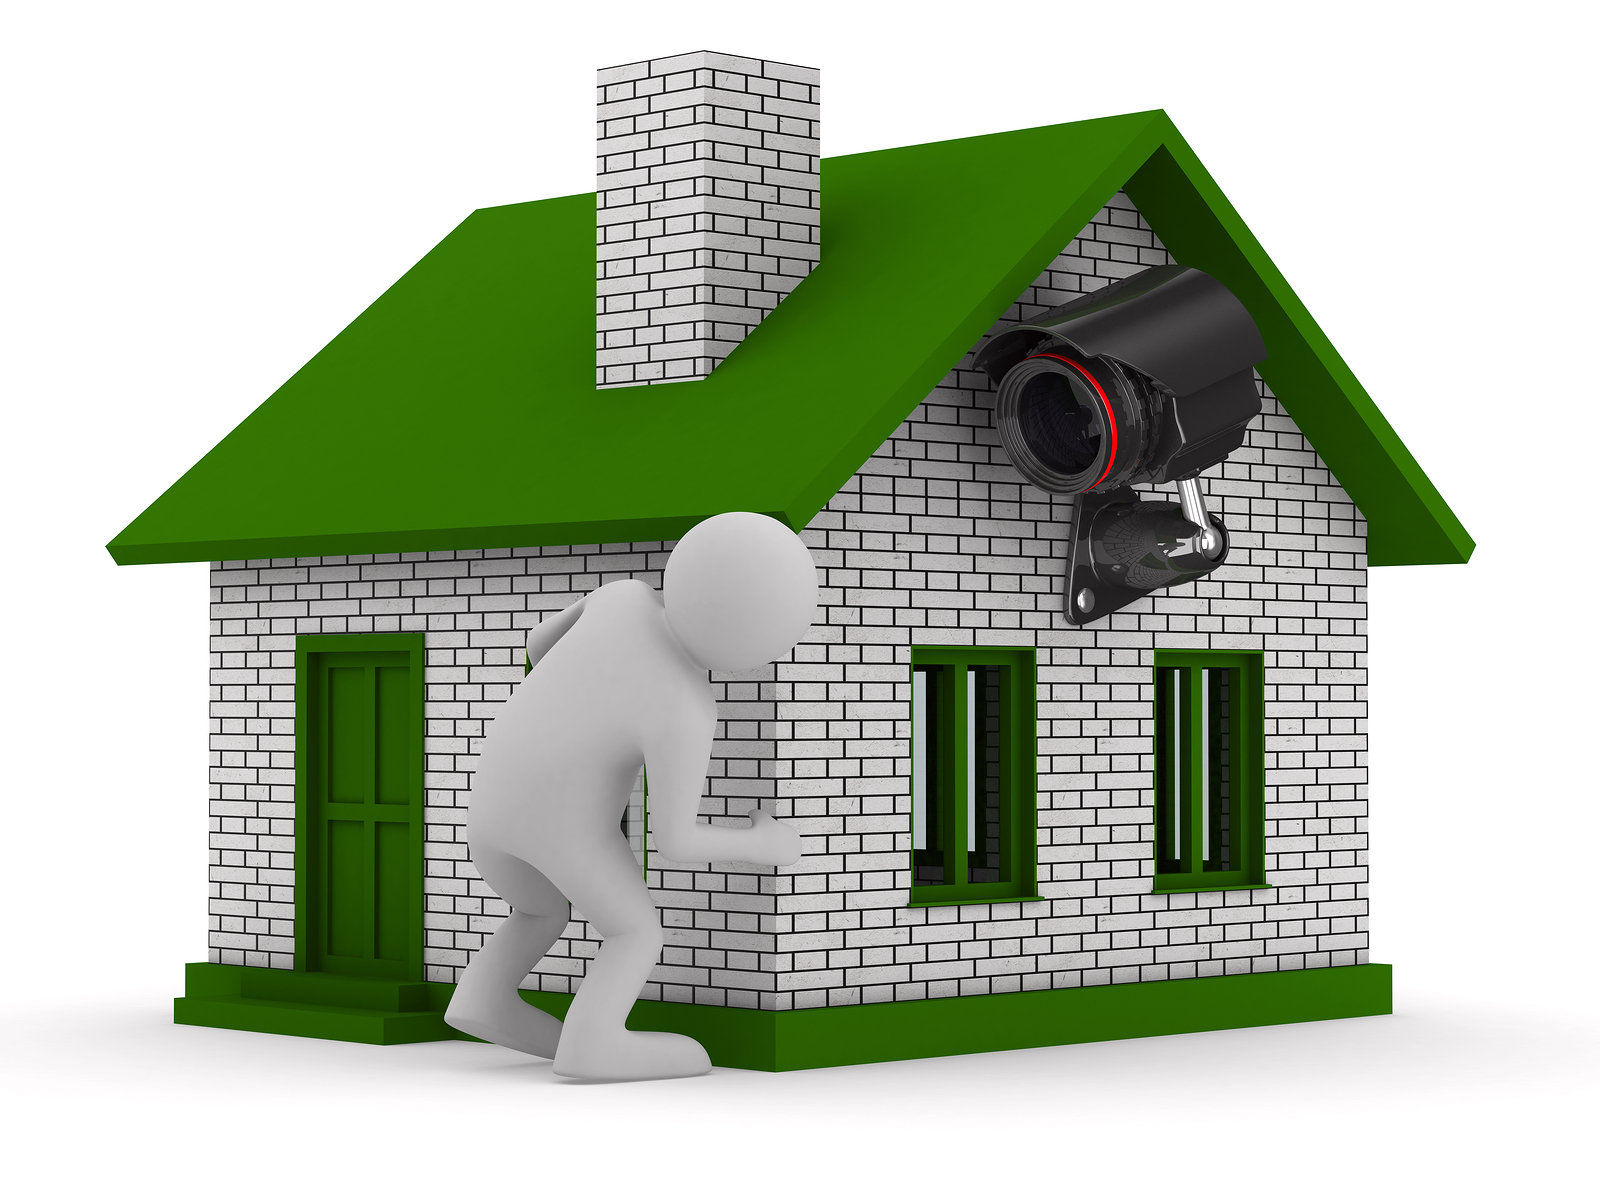 How to Green Up Your Home Security Systems - The Green Optimistic